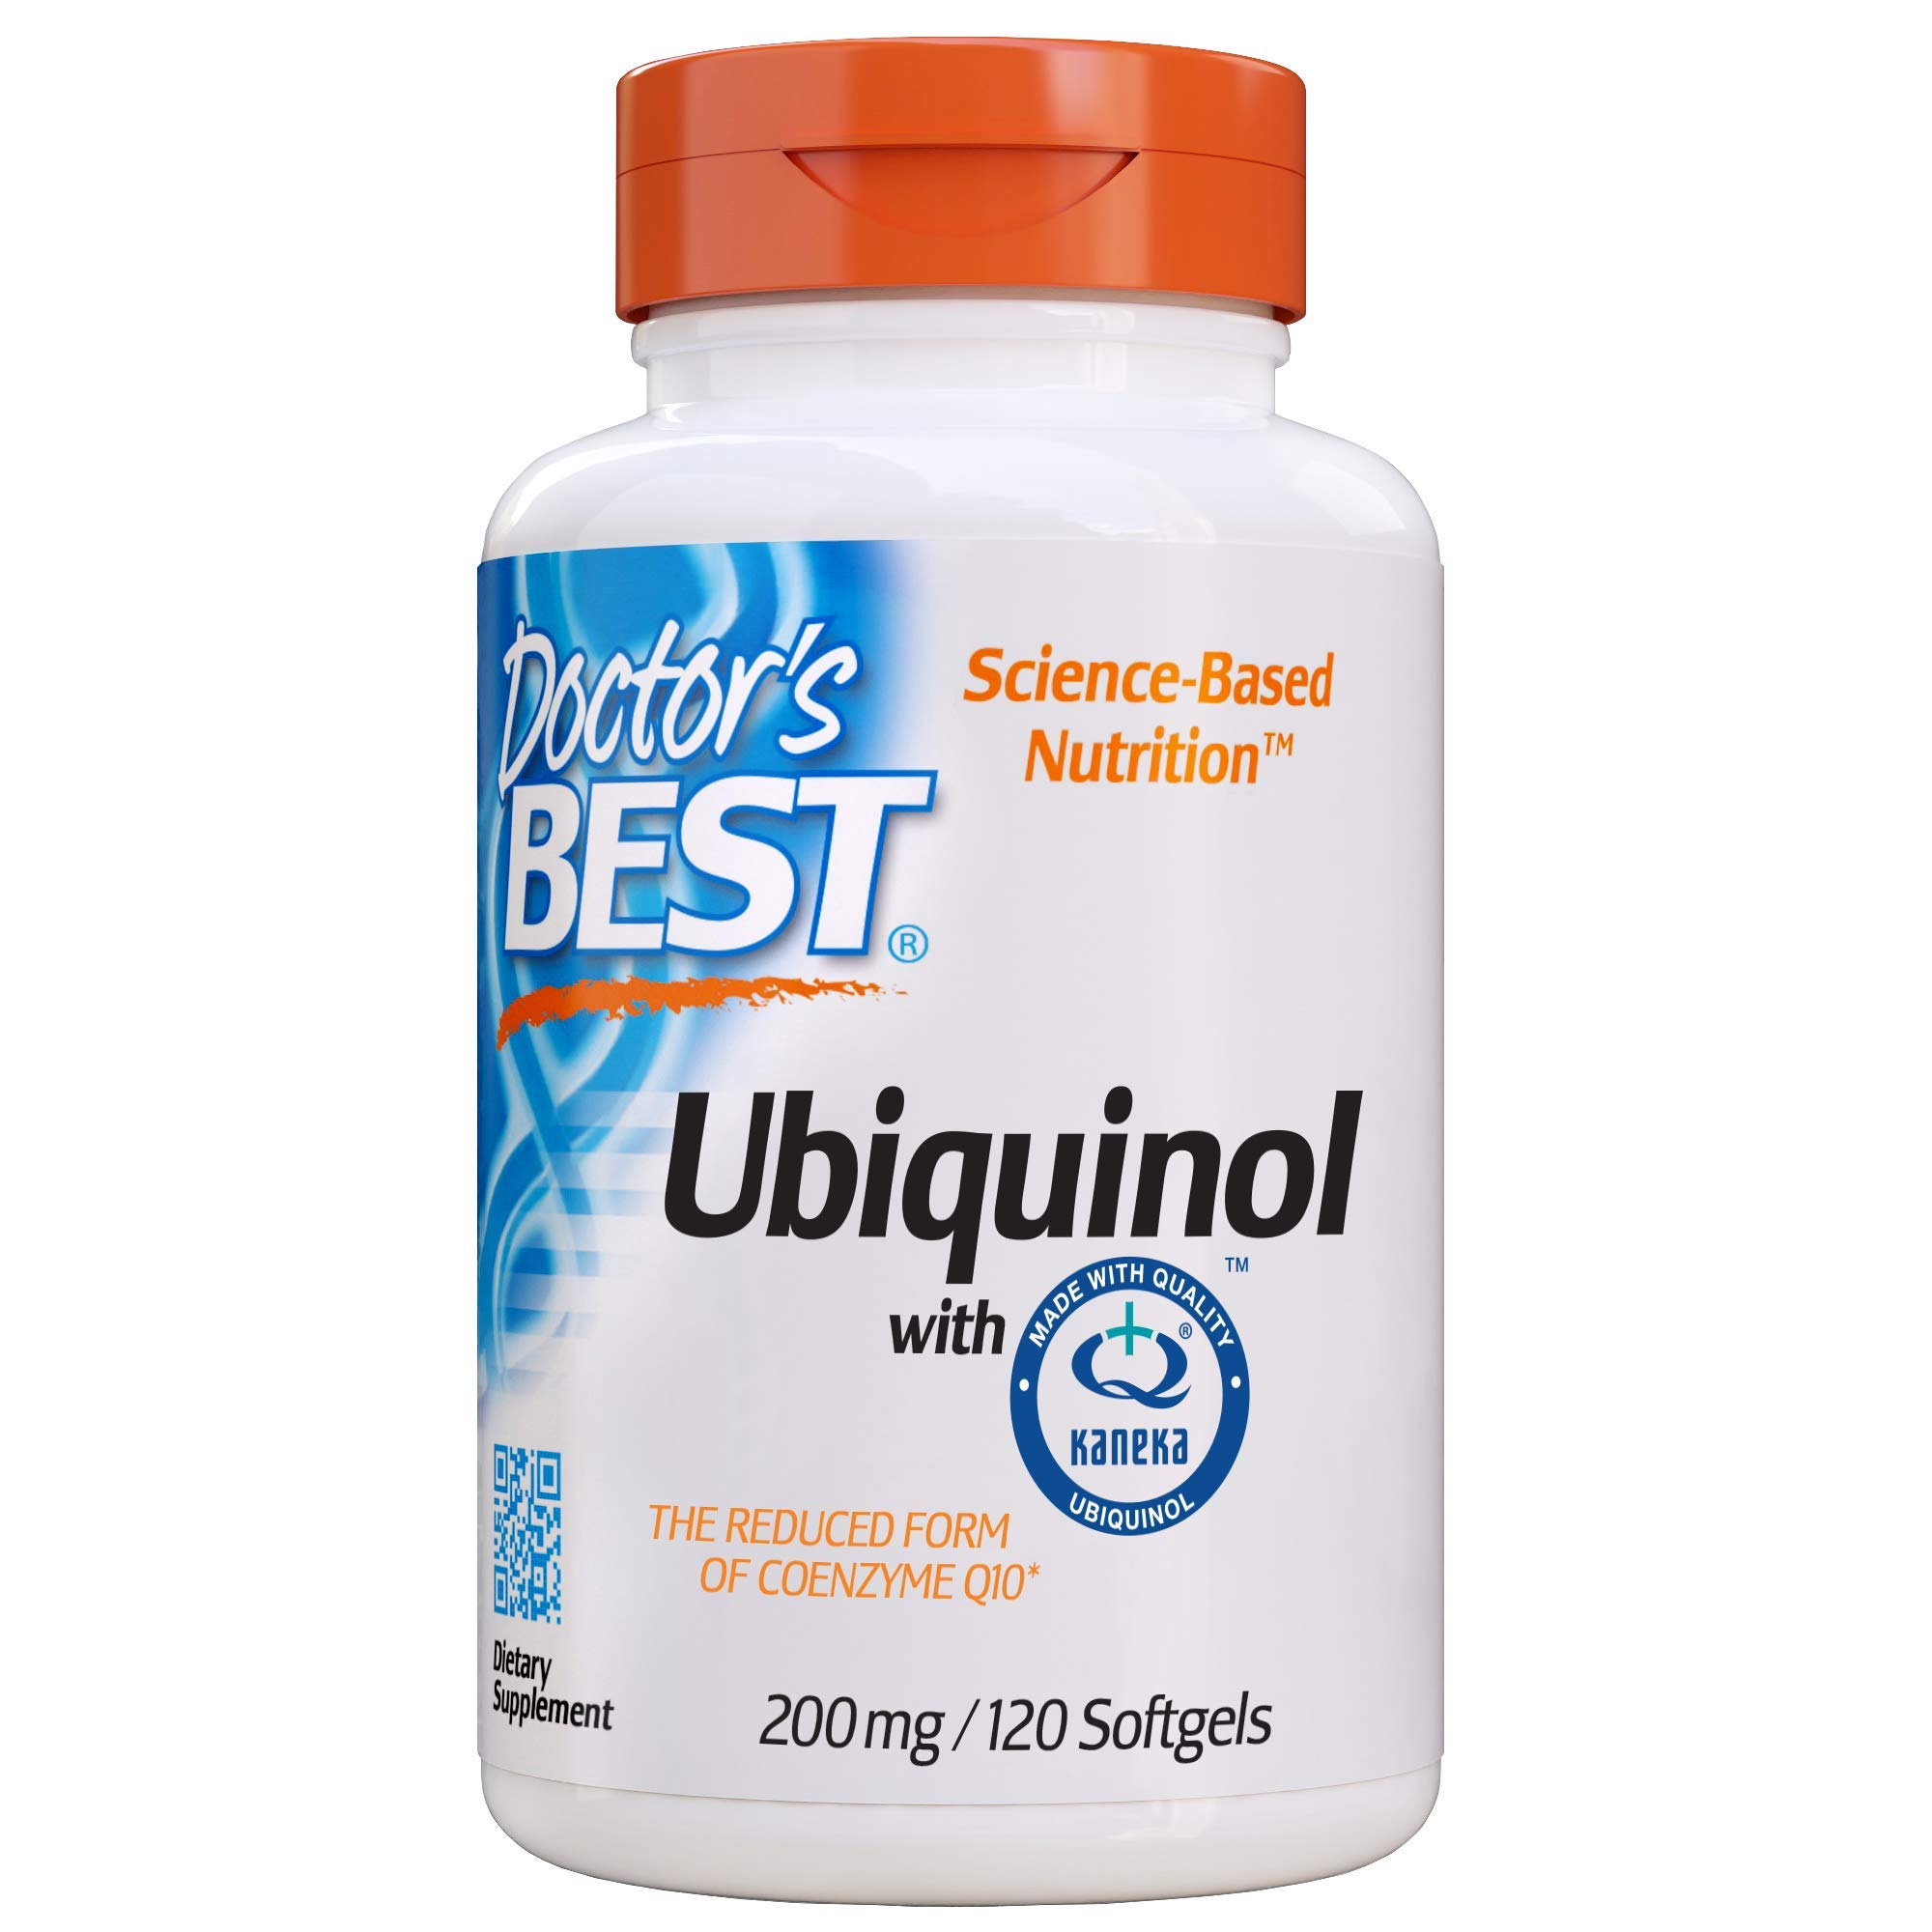 Doctor's Best Ubiquinol with Kaneka QH, Non-GMO, Gluten Free, Soy Free, Heart Health, 200 mg, 120 Softgels by Doctor's Best